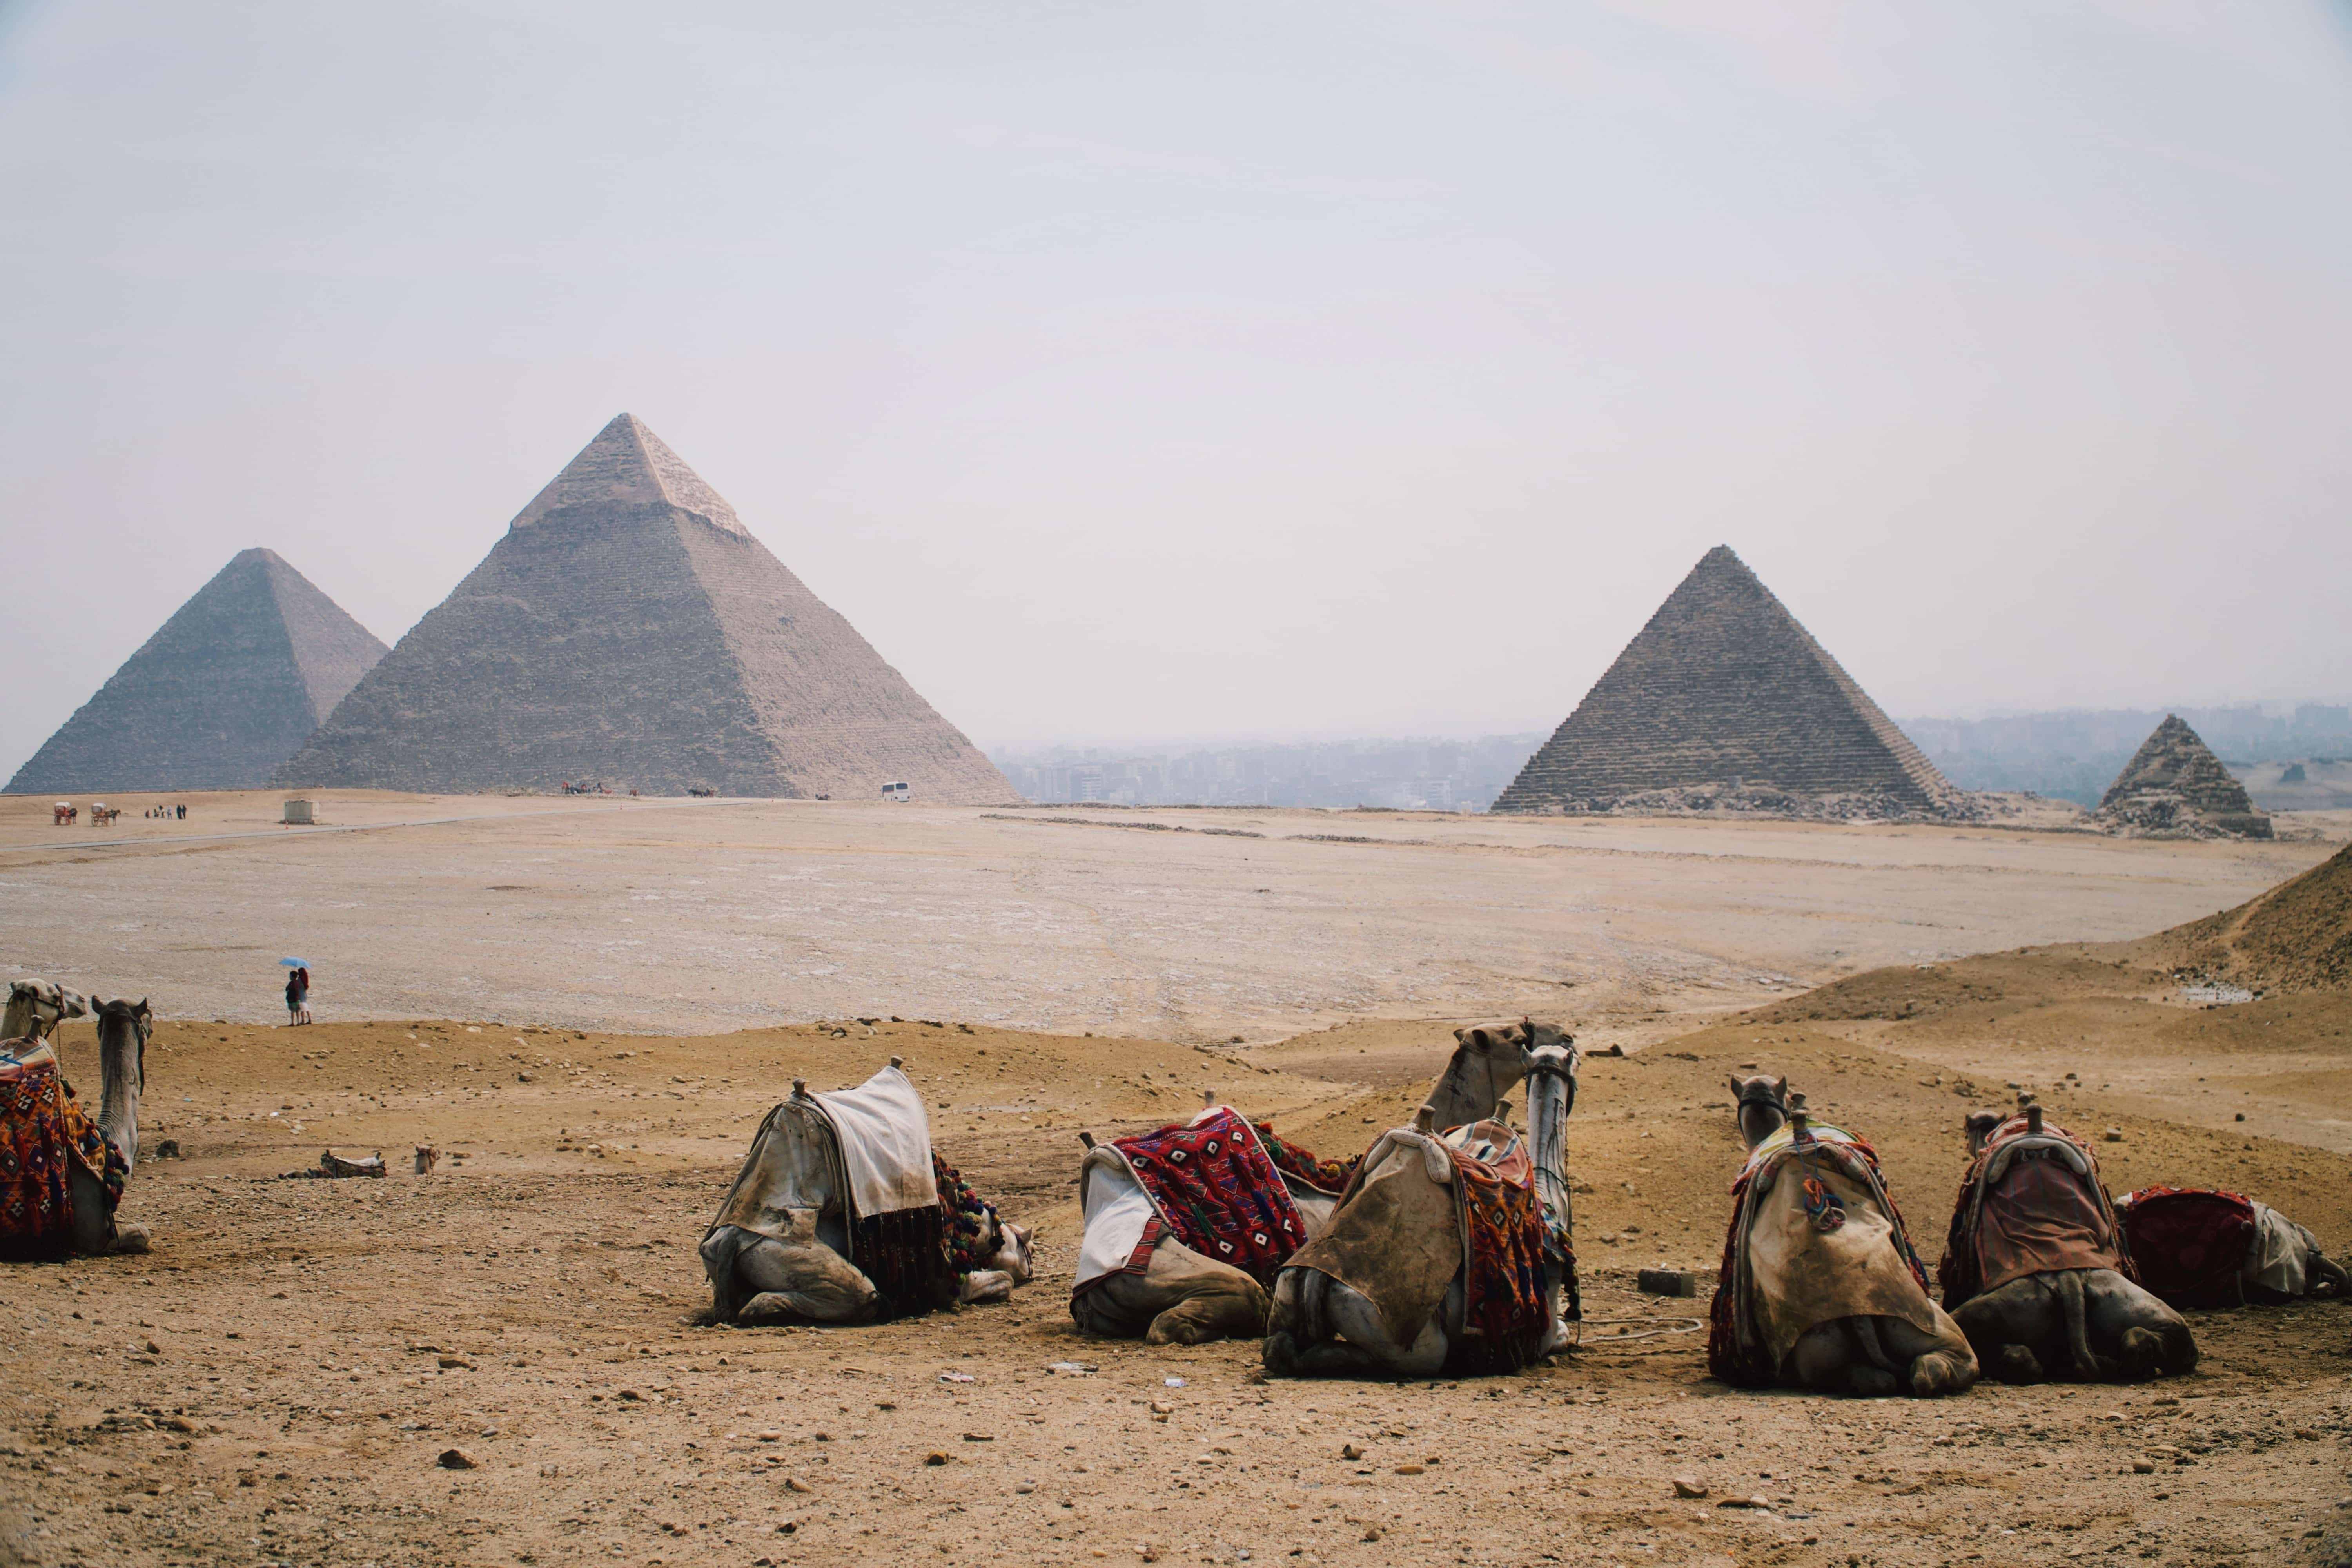 pyramids of giza construction